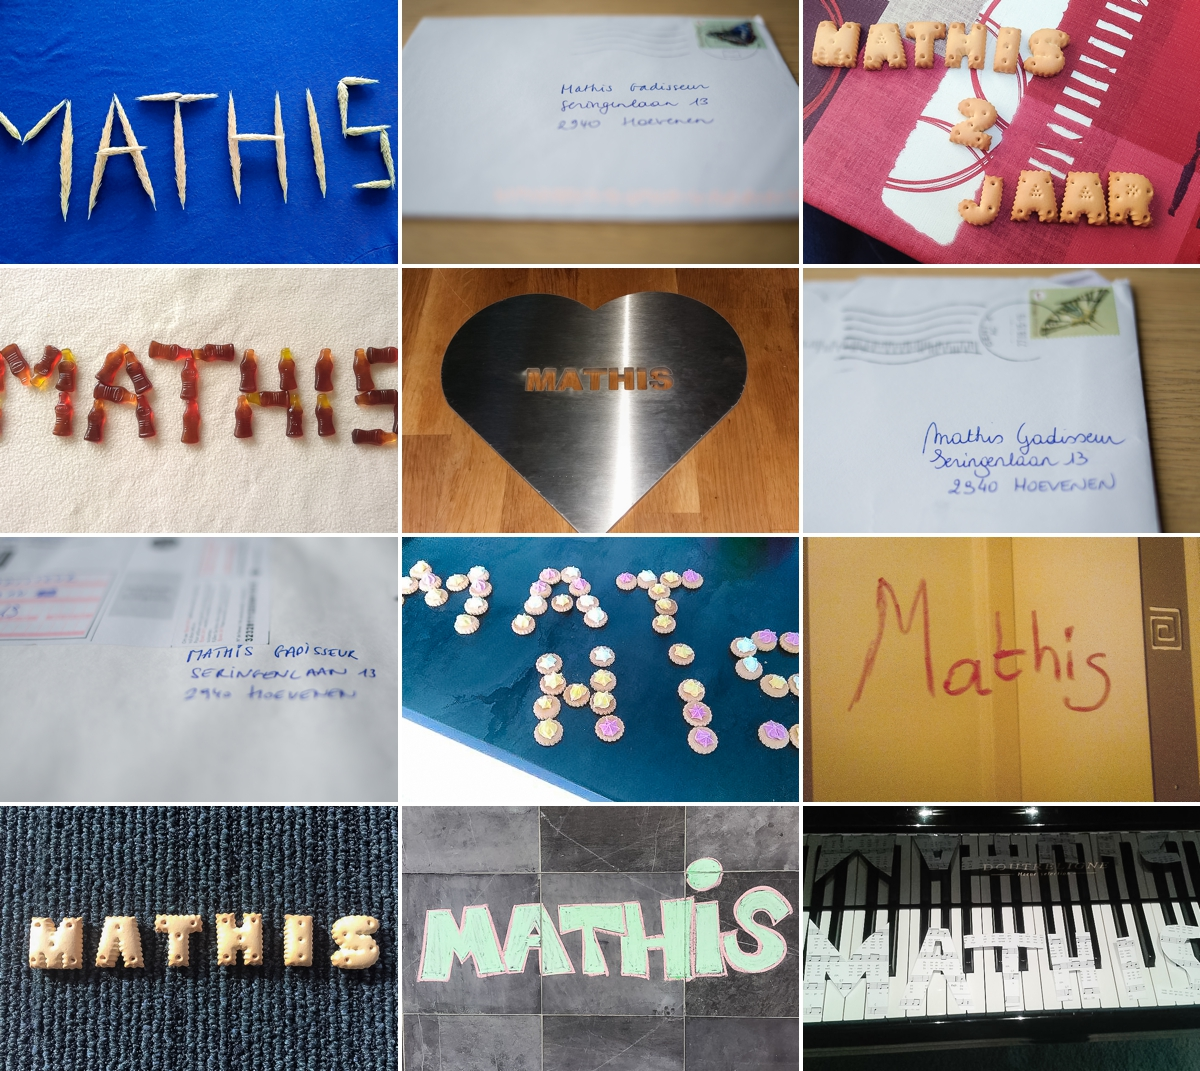 2015 Naamcollage Mathis 3